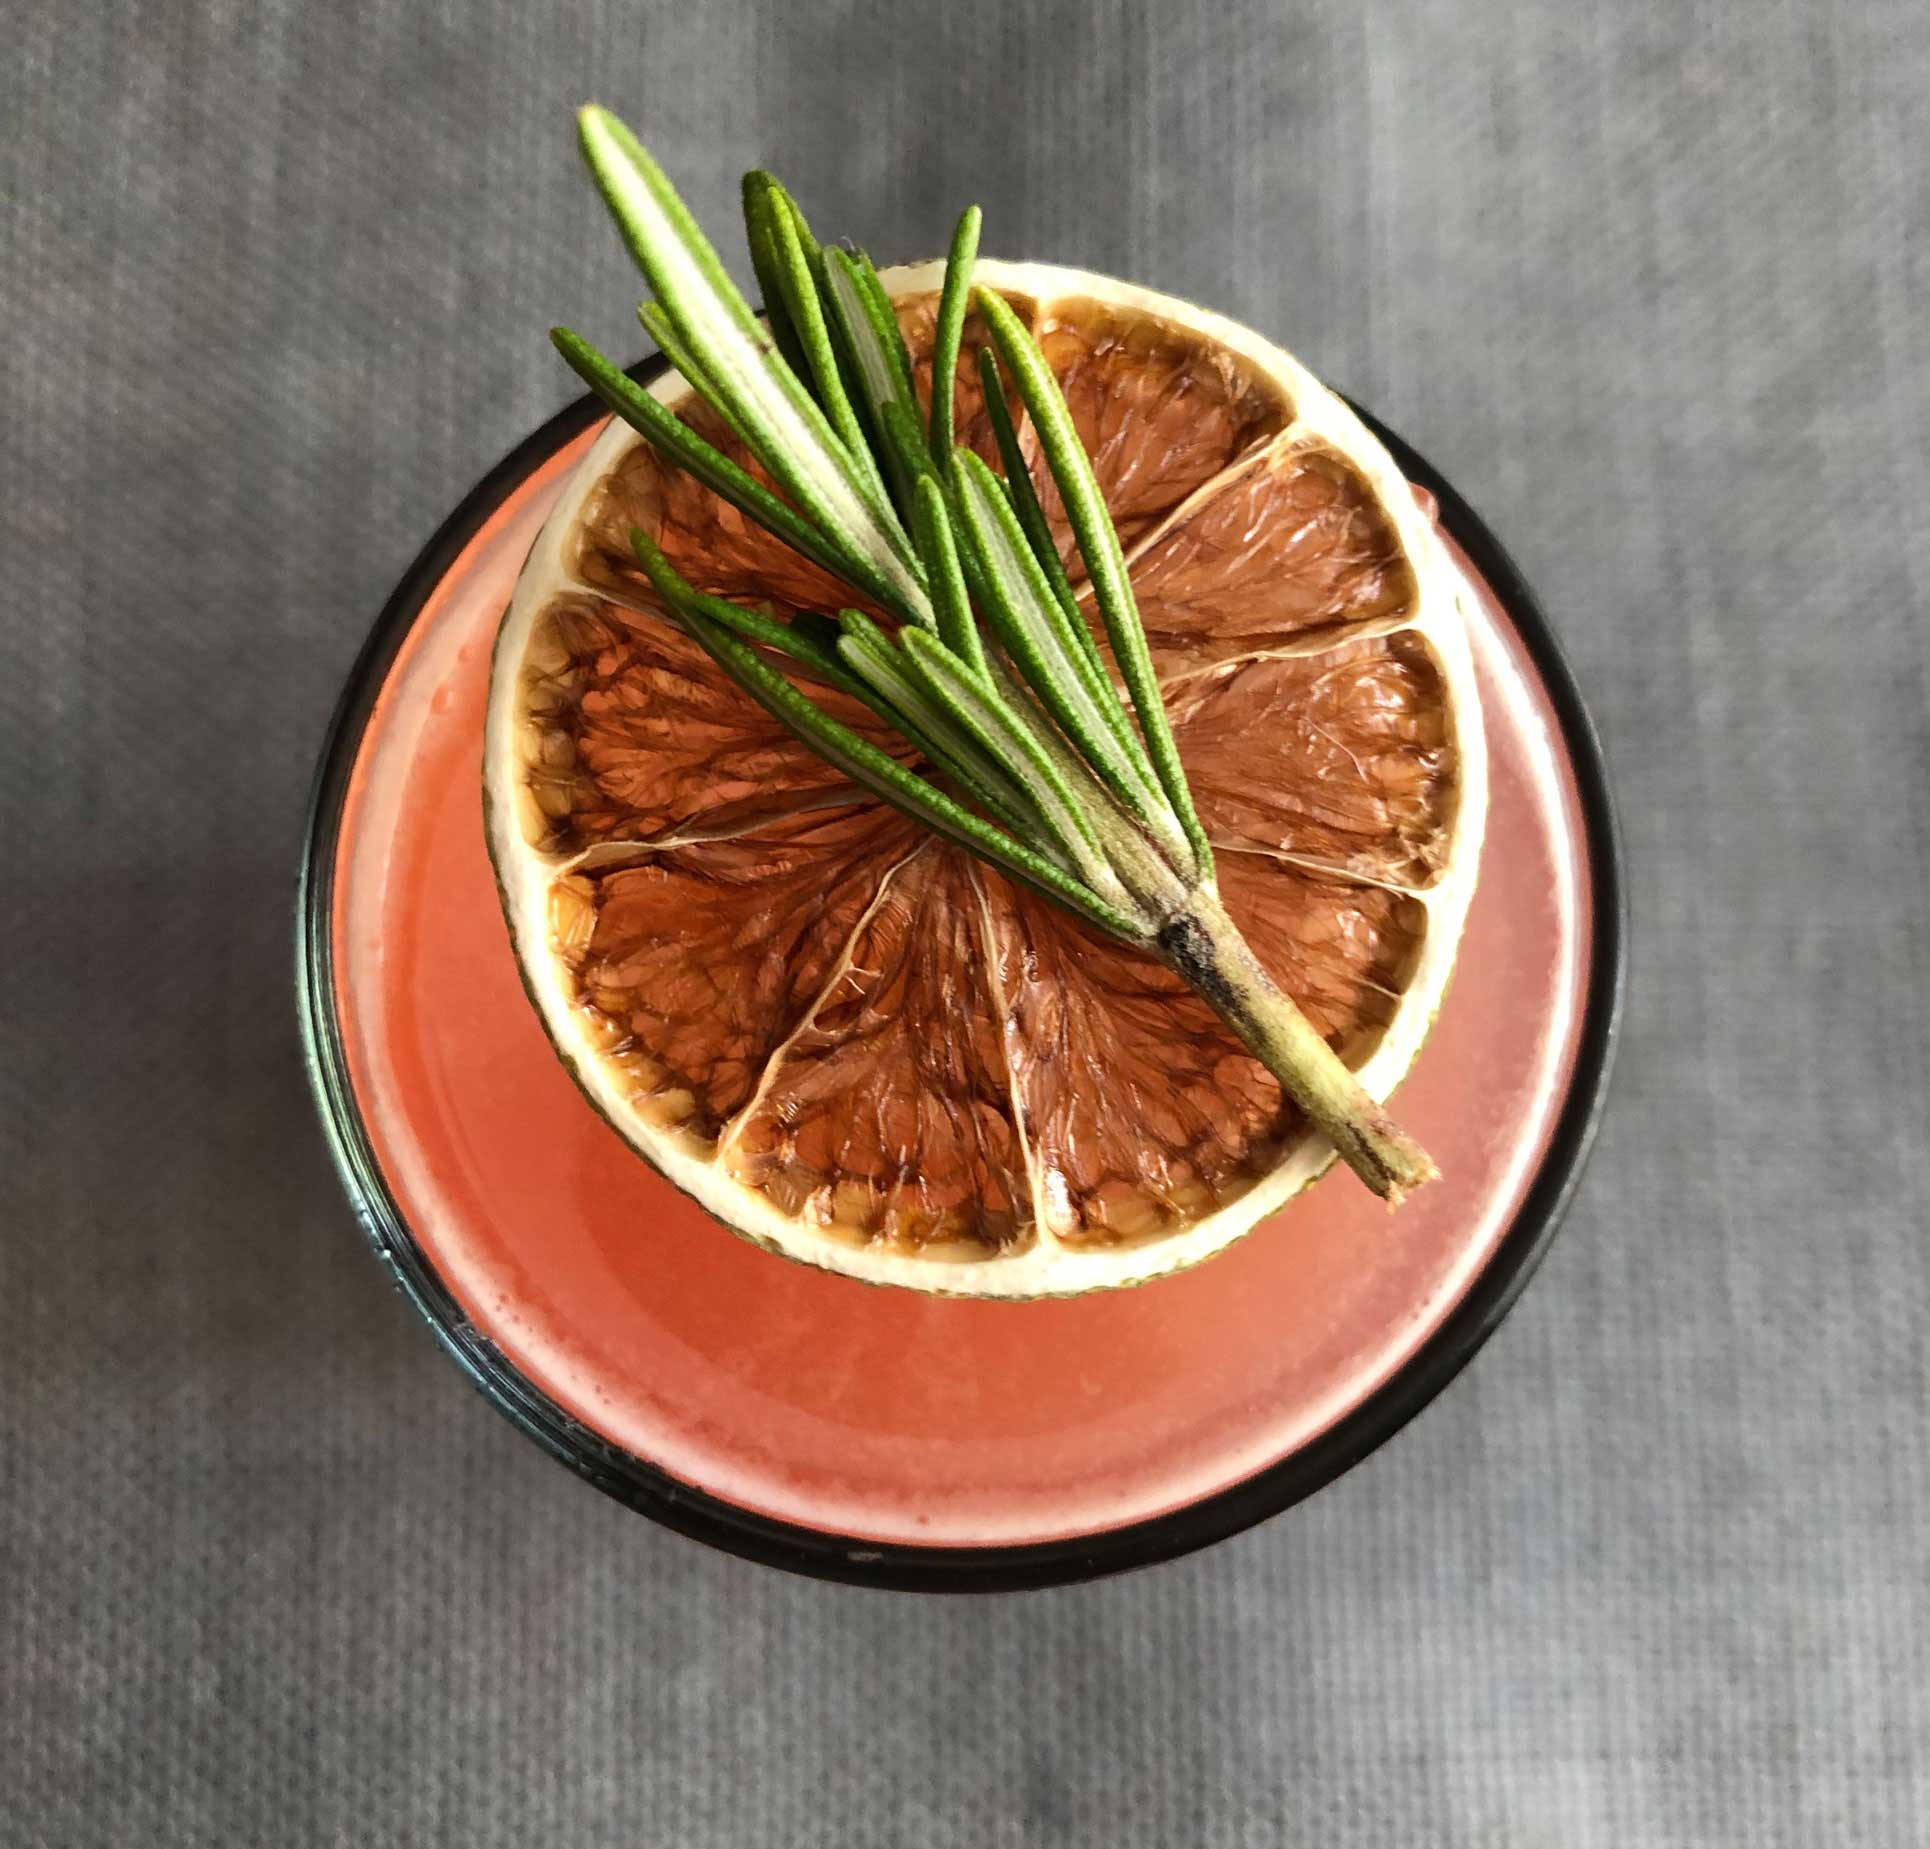 An example of the Altstadt Collins, the mixed drink (collins), by Adam Bernbach, 2Birds 1Stone, DC, featuring lager, Zirbenz Stone Pine Liqueur of the Alps, John D. Taylor's Velvet Falernum, and lime juice; photo by Lee Edwards